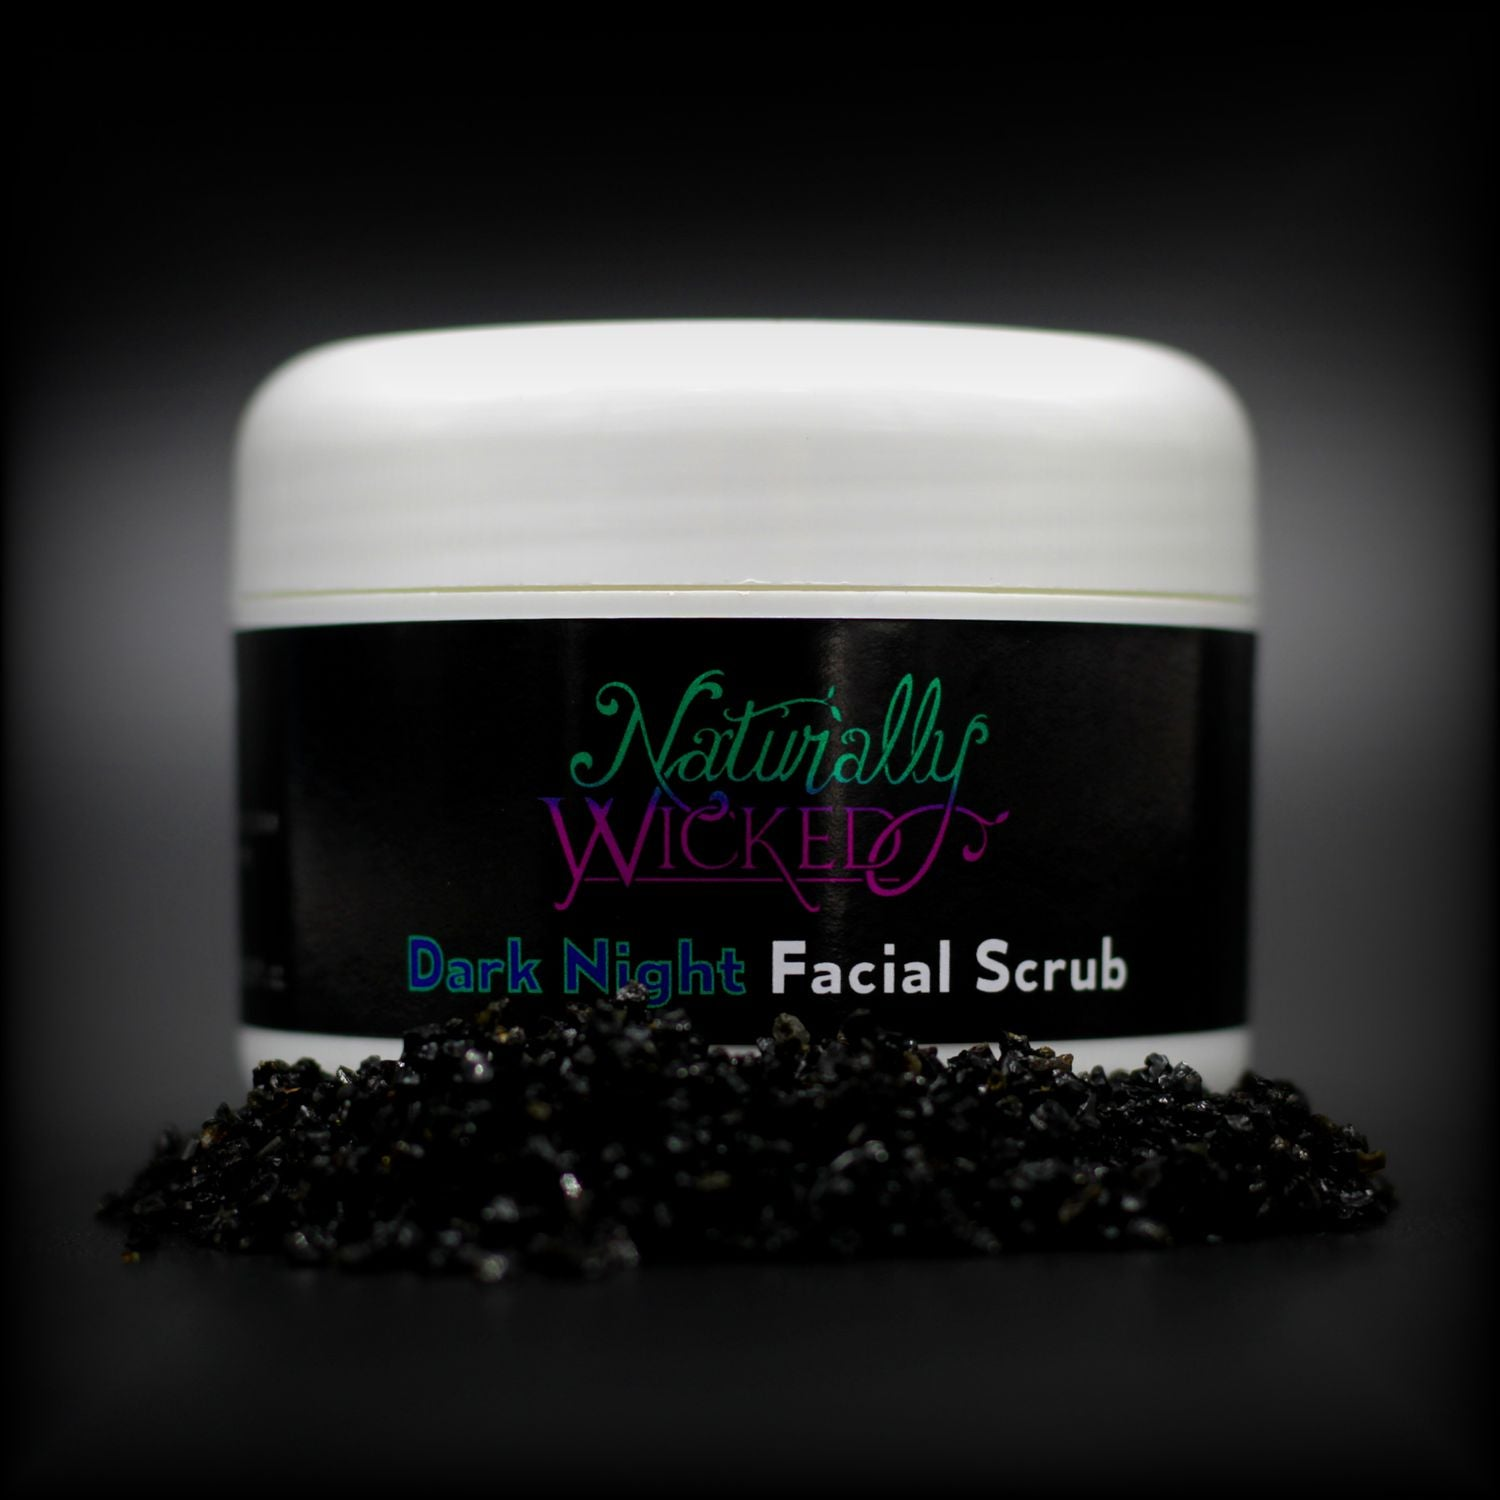 Naturally Wicked Dark Night Facial Scrub Surrounded By Absorbant Black Charcoal